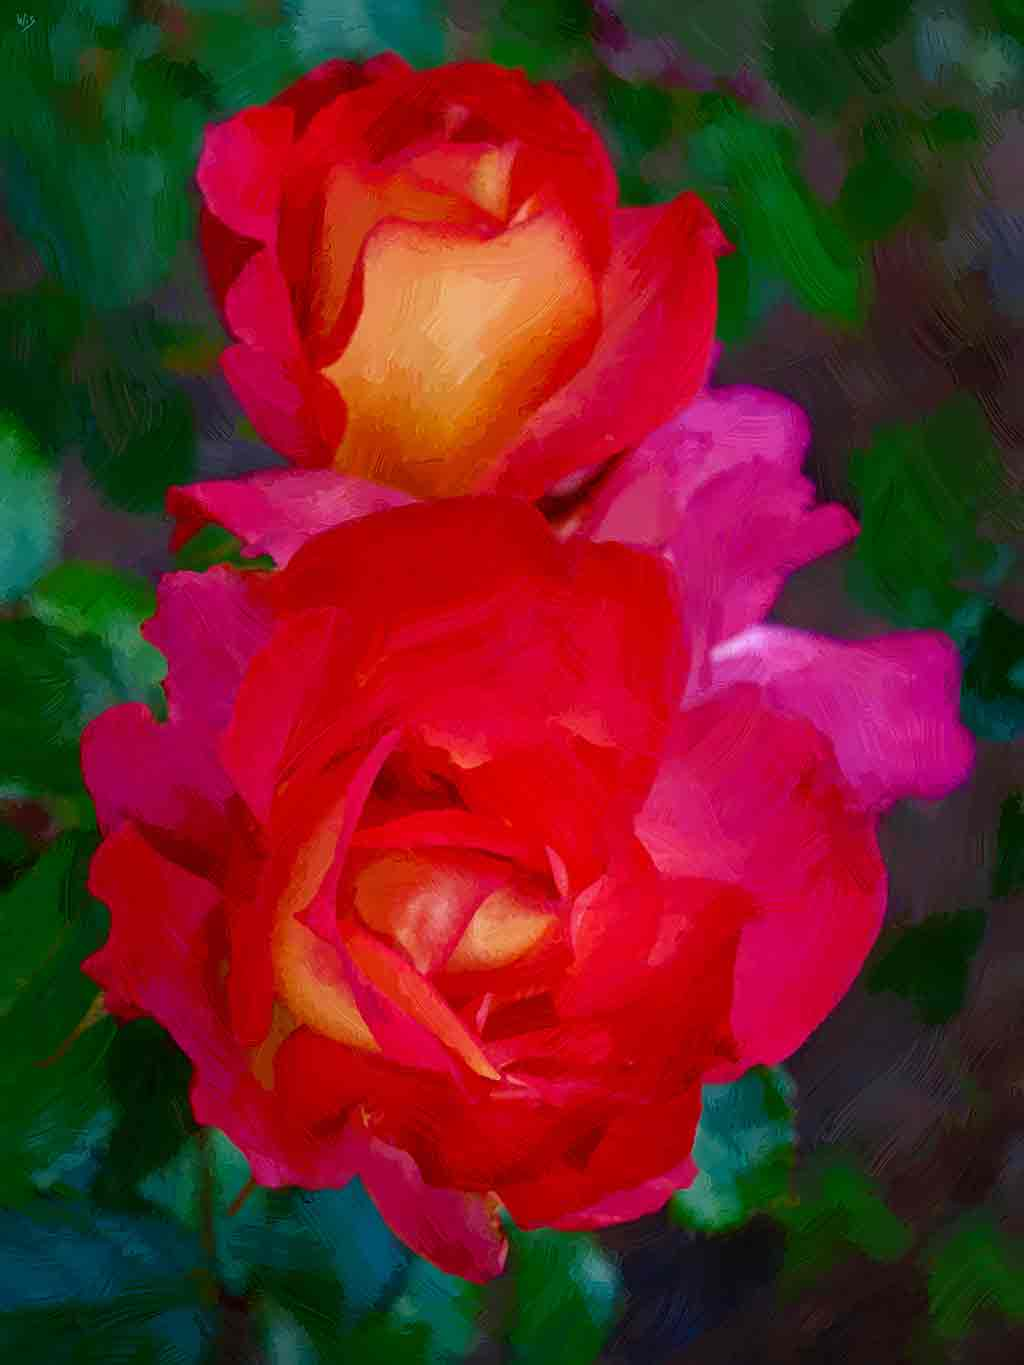 Two Red Roses, digital painting on Art Canvas Print by Wieslaw Sadurski